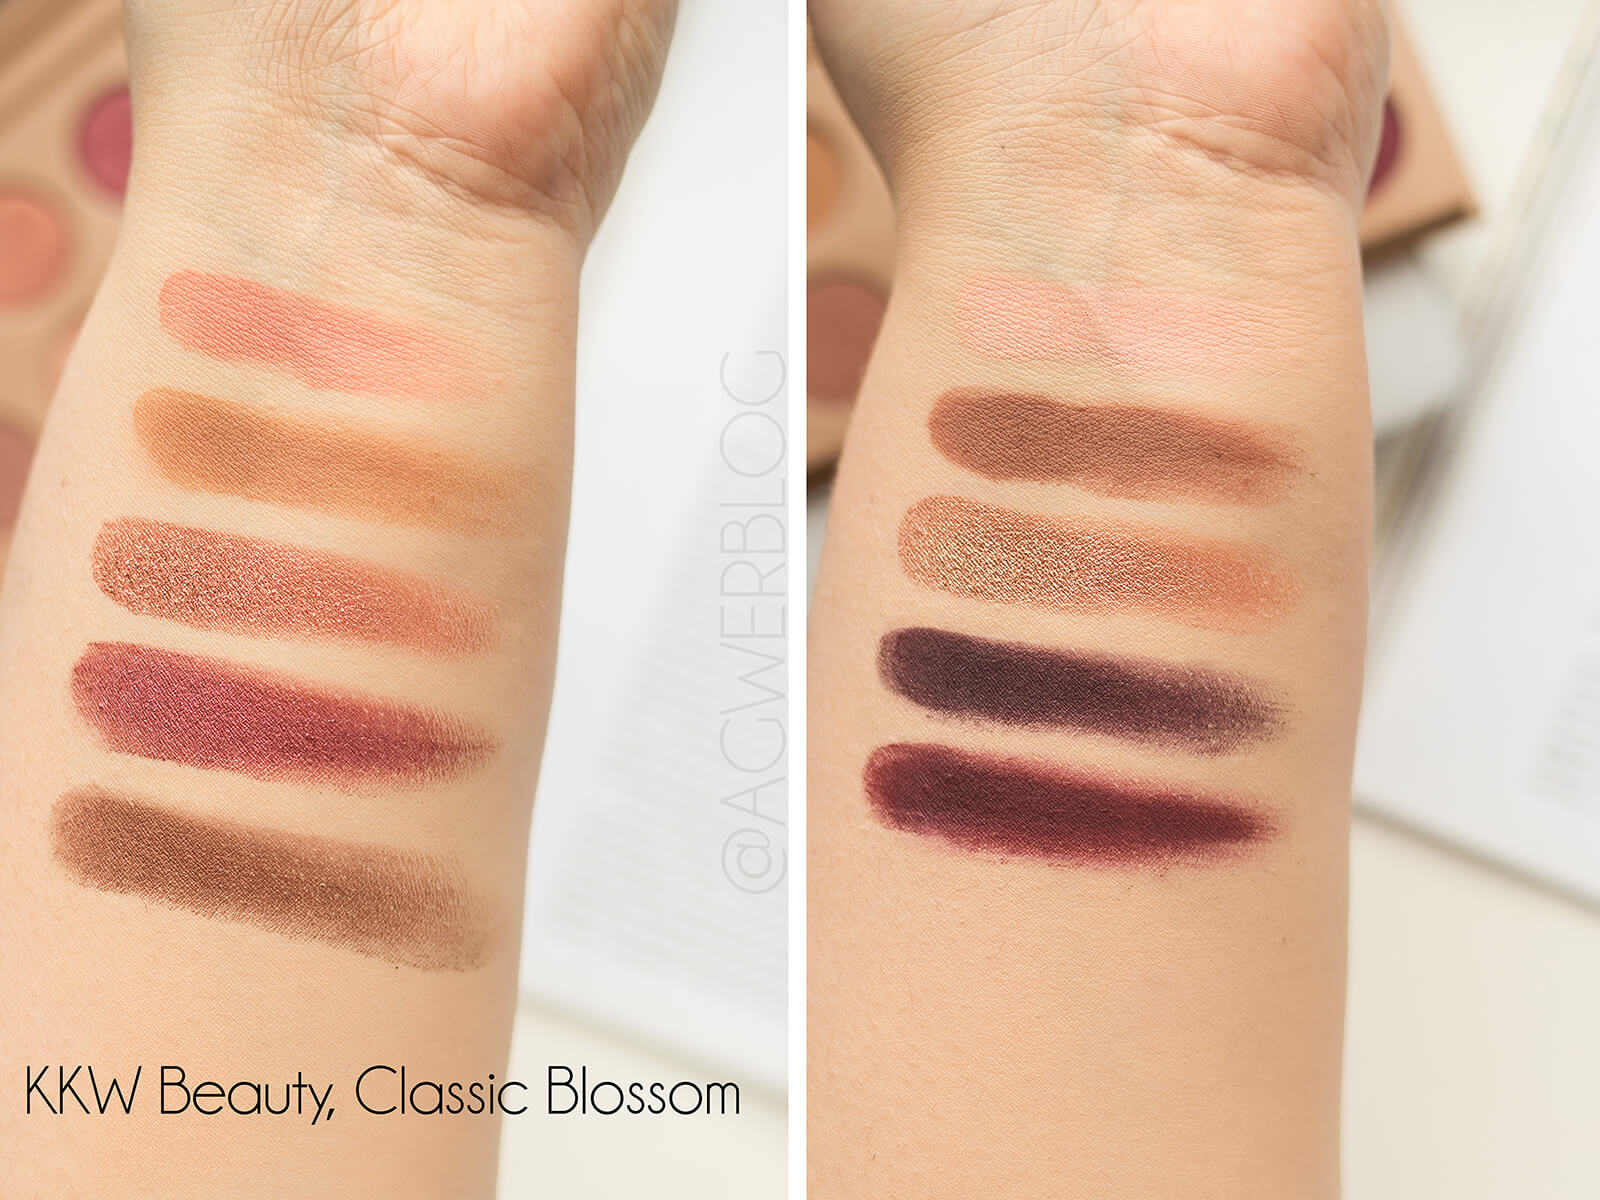 KKW Beauty Classic Blossom blog